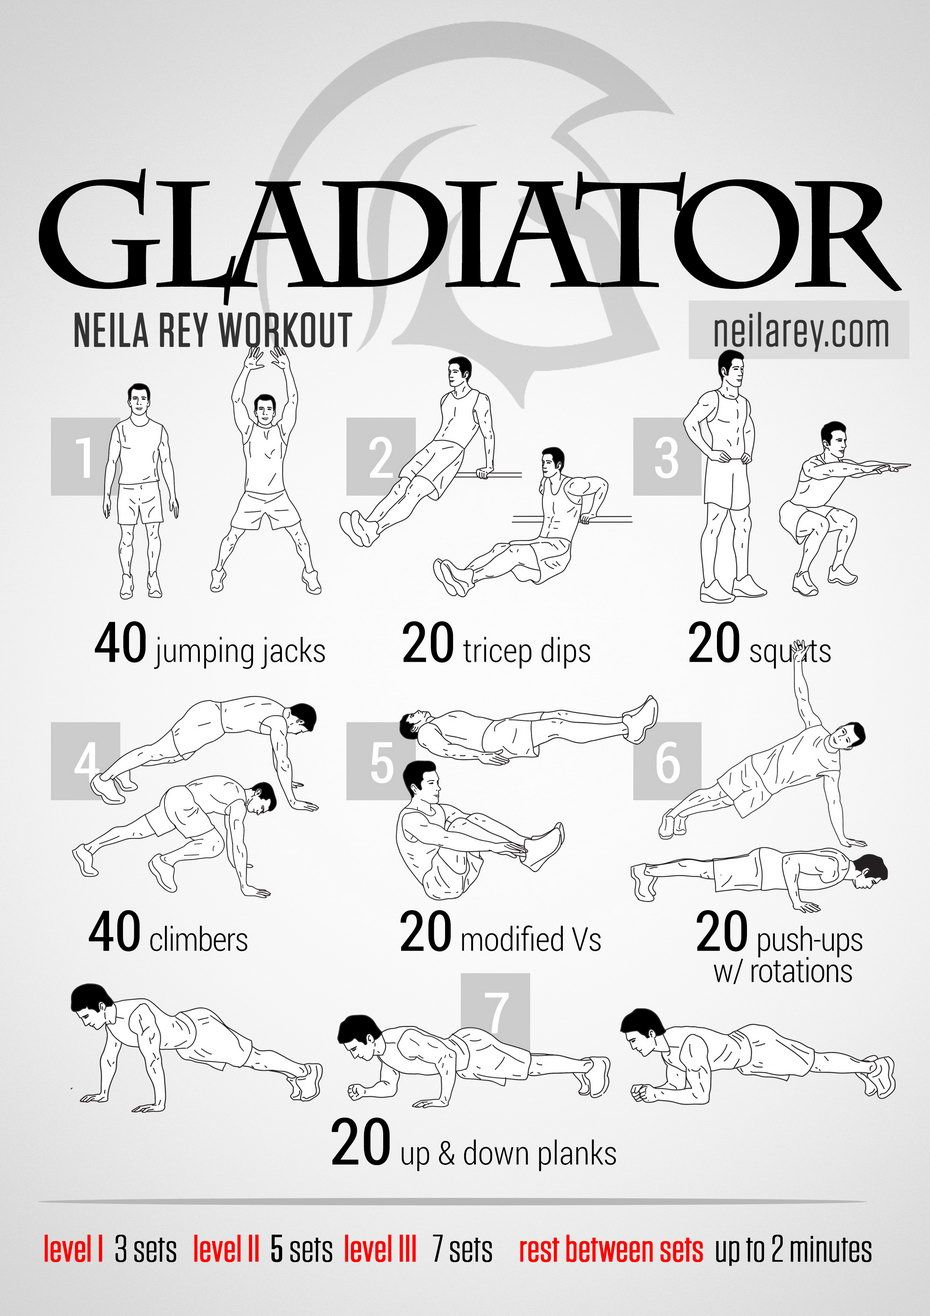 Tryout This Gladiator Workout Routine Perfect To Lose Weight And Get Fit Without Going The Gym